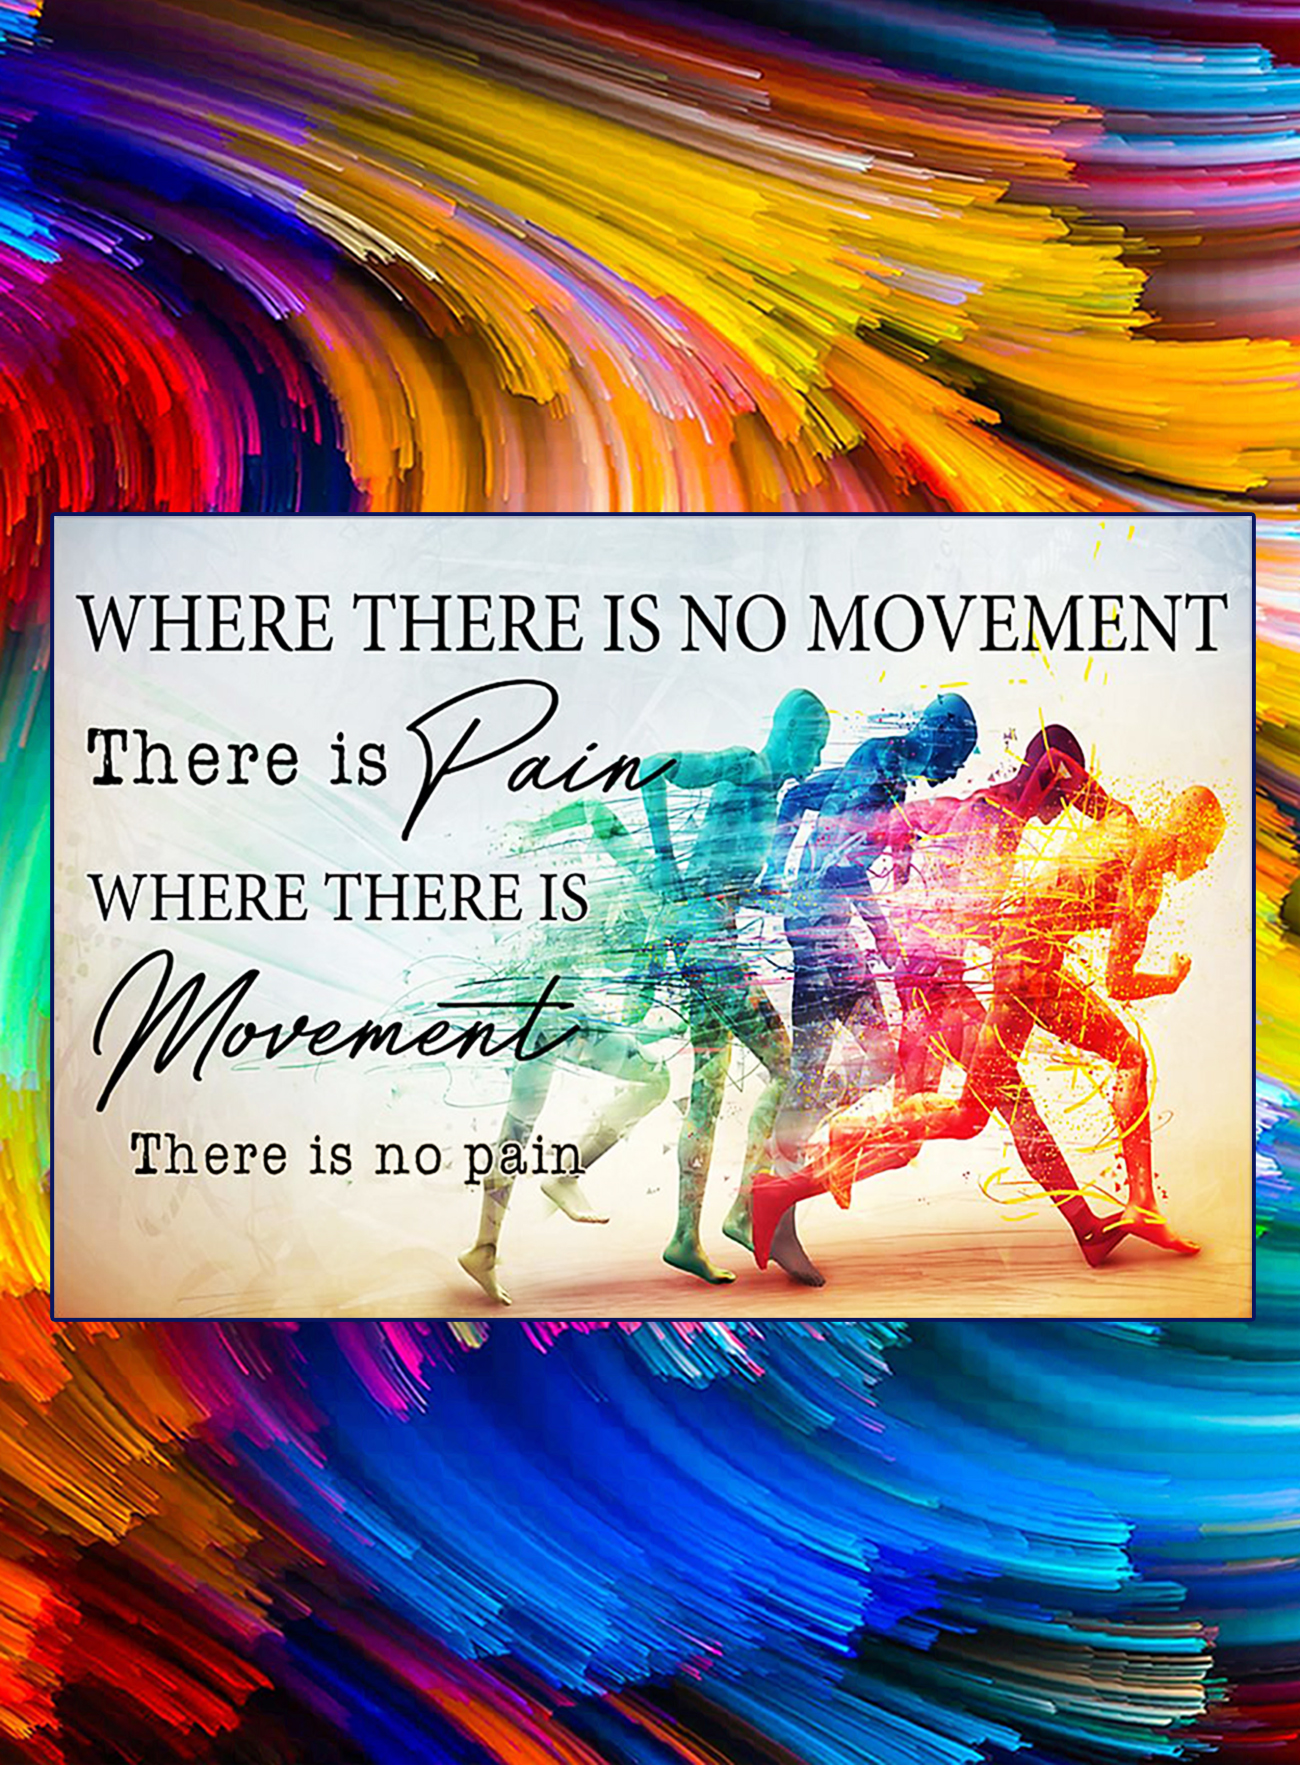 Where there is no movement there is pain where there is movement there is no pain poster - A1